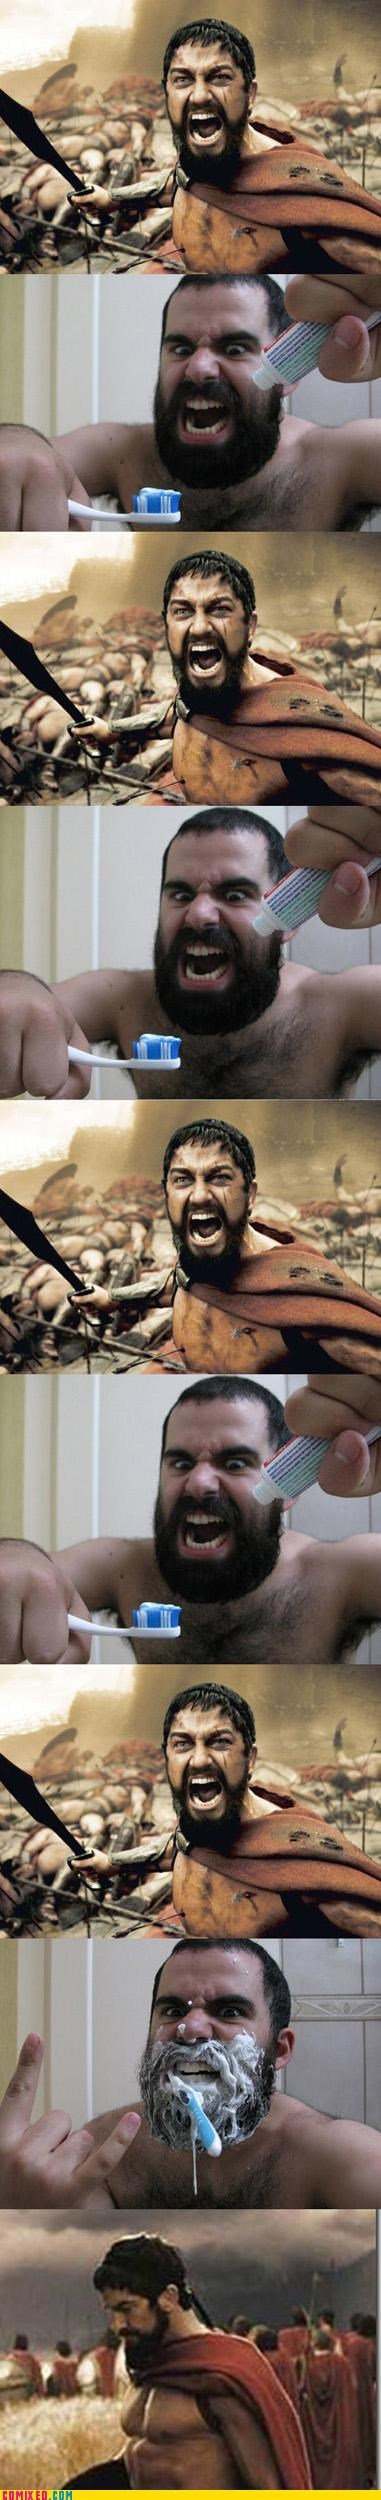 300 beards epic sparta Tenso toothpaste wtf - 4226327040